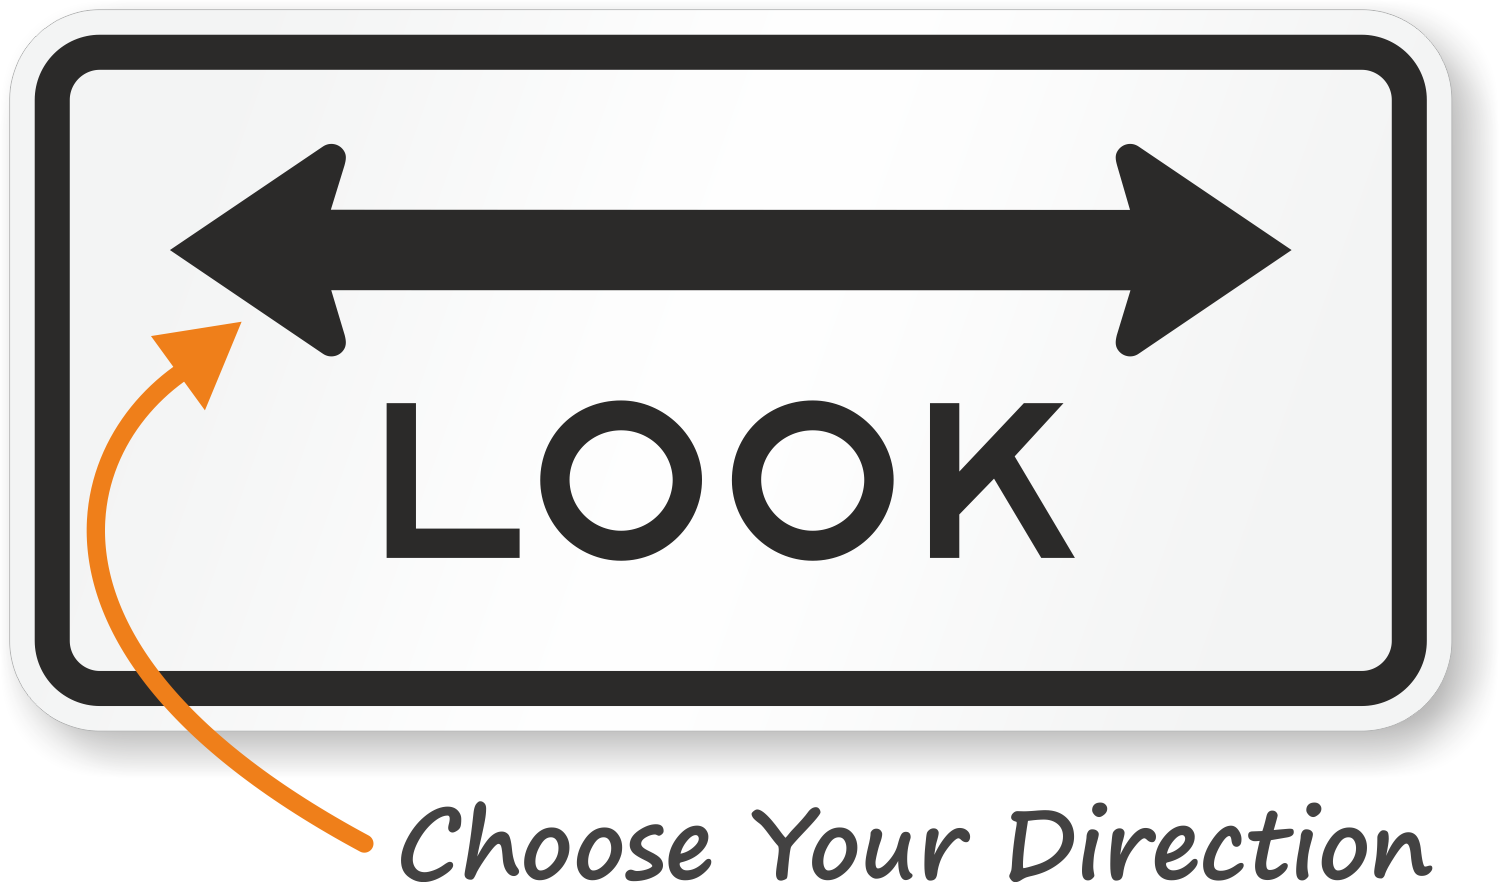 Look Both Directions Sign - R15-8, SKU: X-R15-8